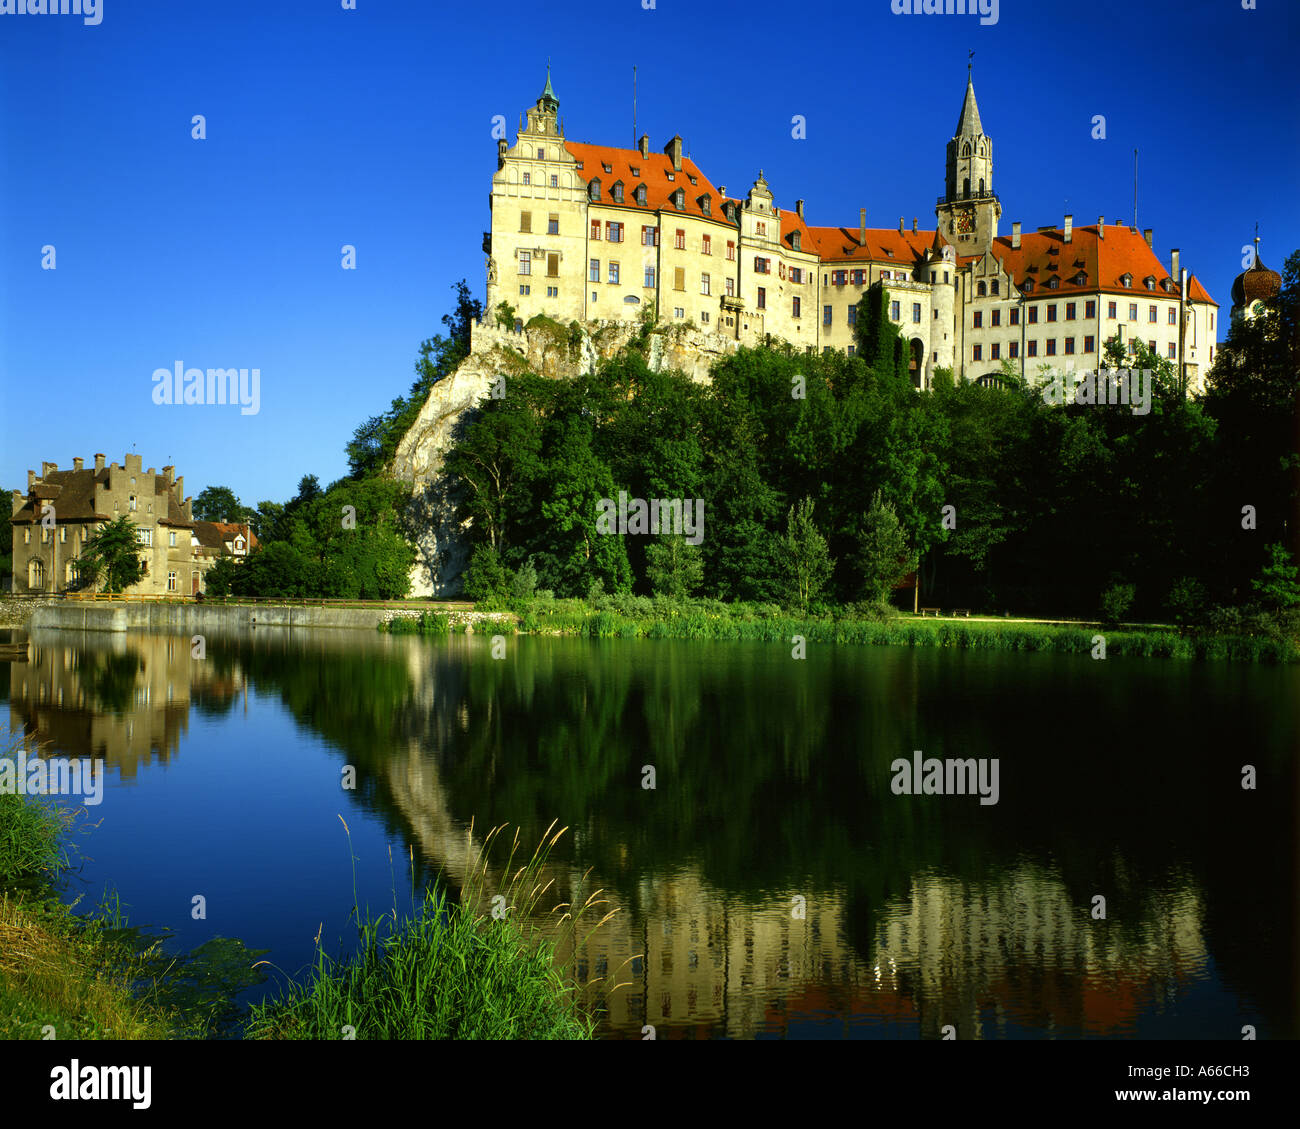 DE - BADEN WÜRTTEMBERG: Hohenzollern Castle at Sigmaringen and River Danube - Stock Image